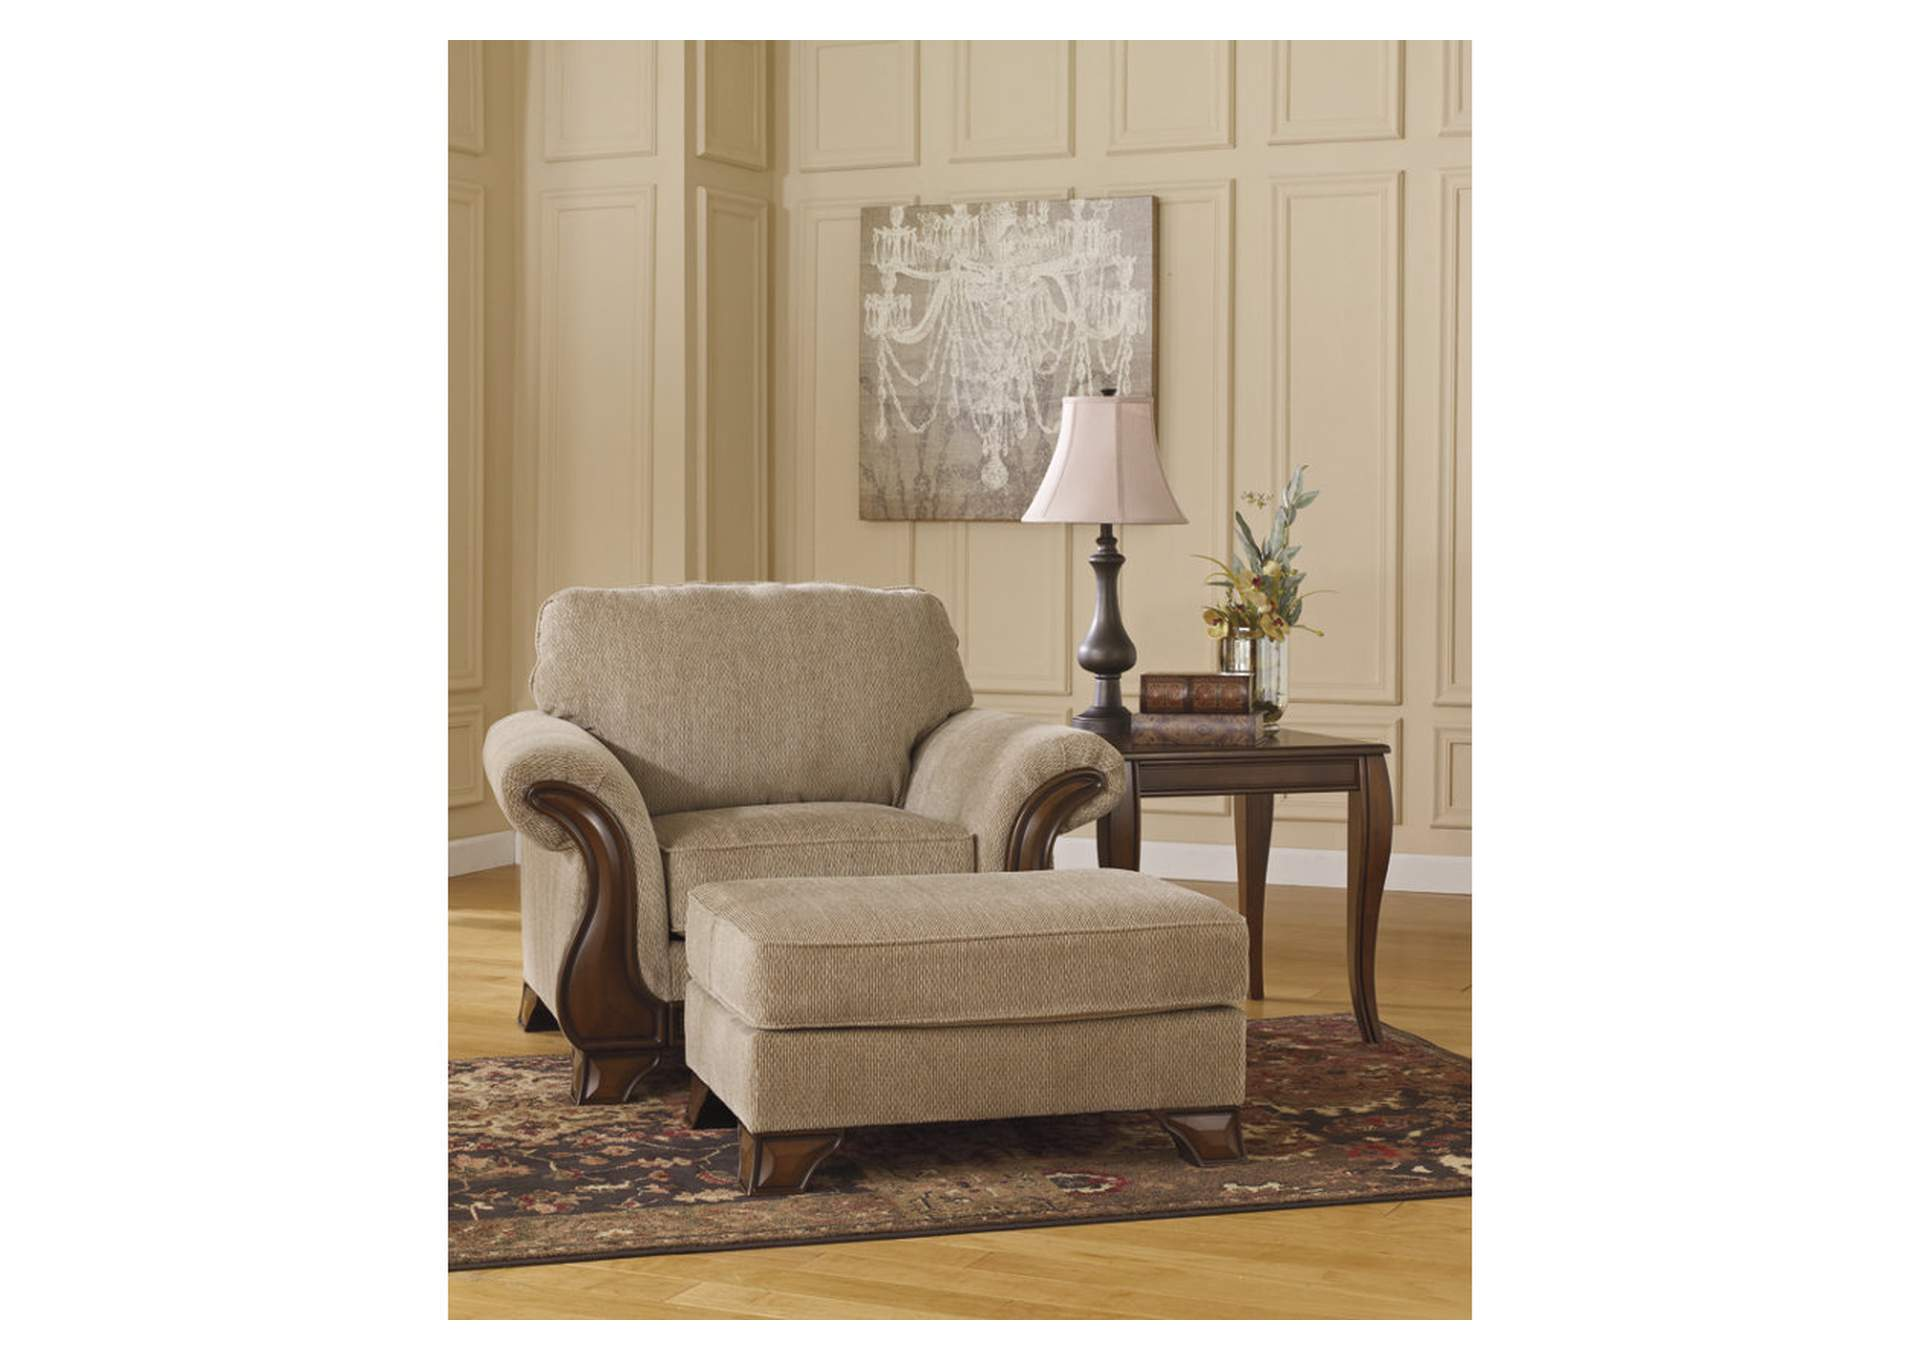 Charmant Lanett Chair U0026 Ottoman,Signature Design By Ashley